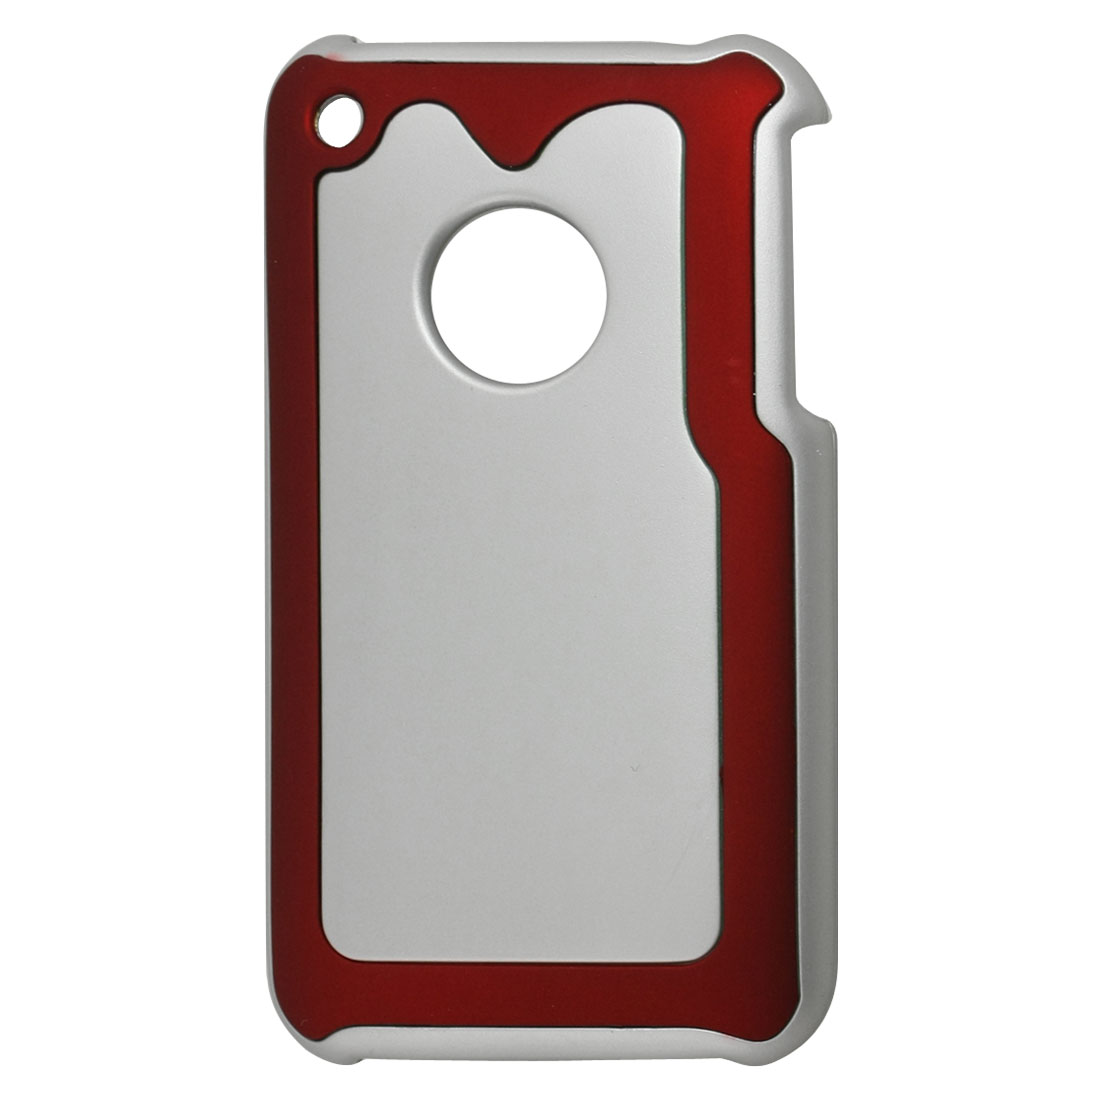 Silver Tone Maroon Hard Plastic Back Case for iPhone 3G 3GS